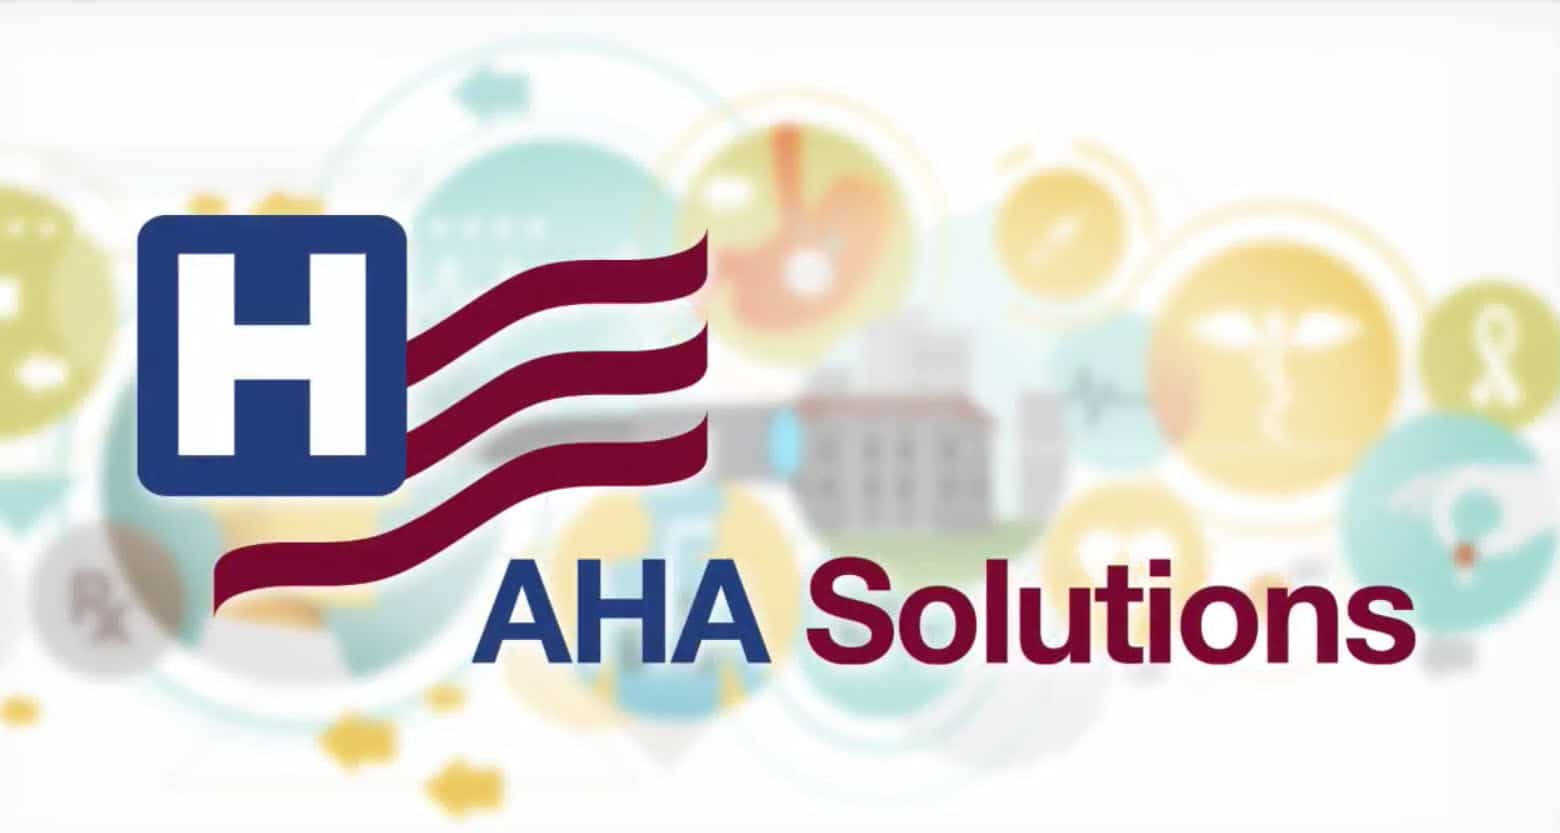 AHA Endorses Physician Leadership Institute